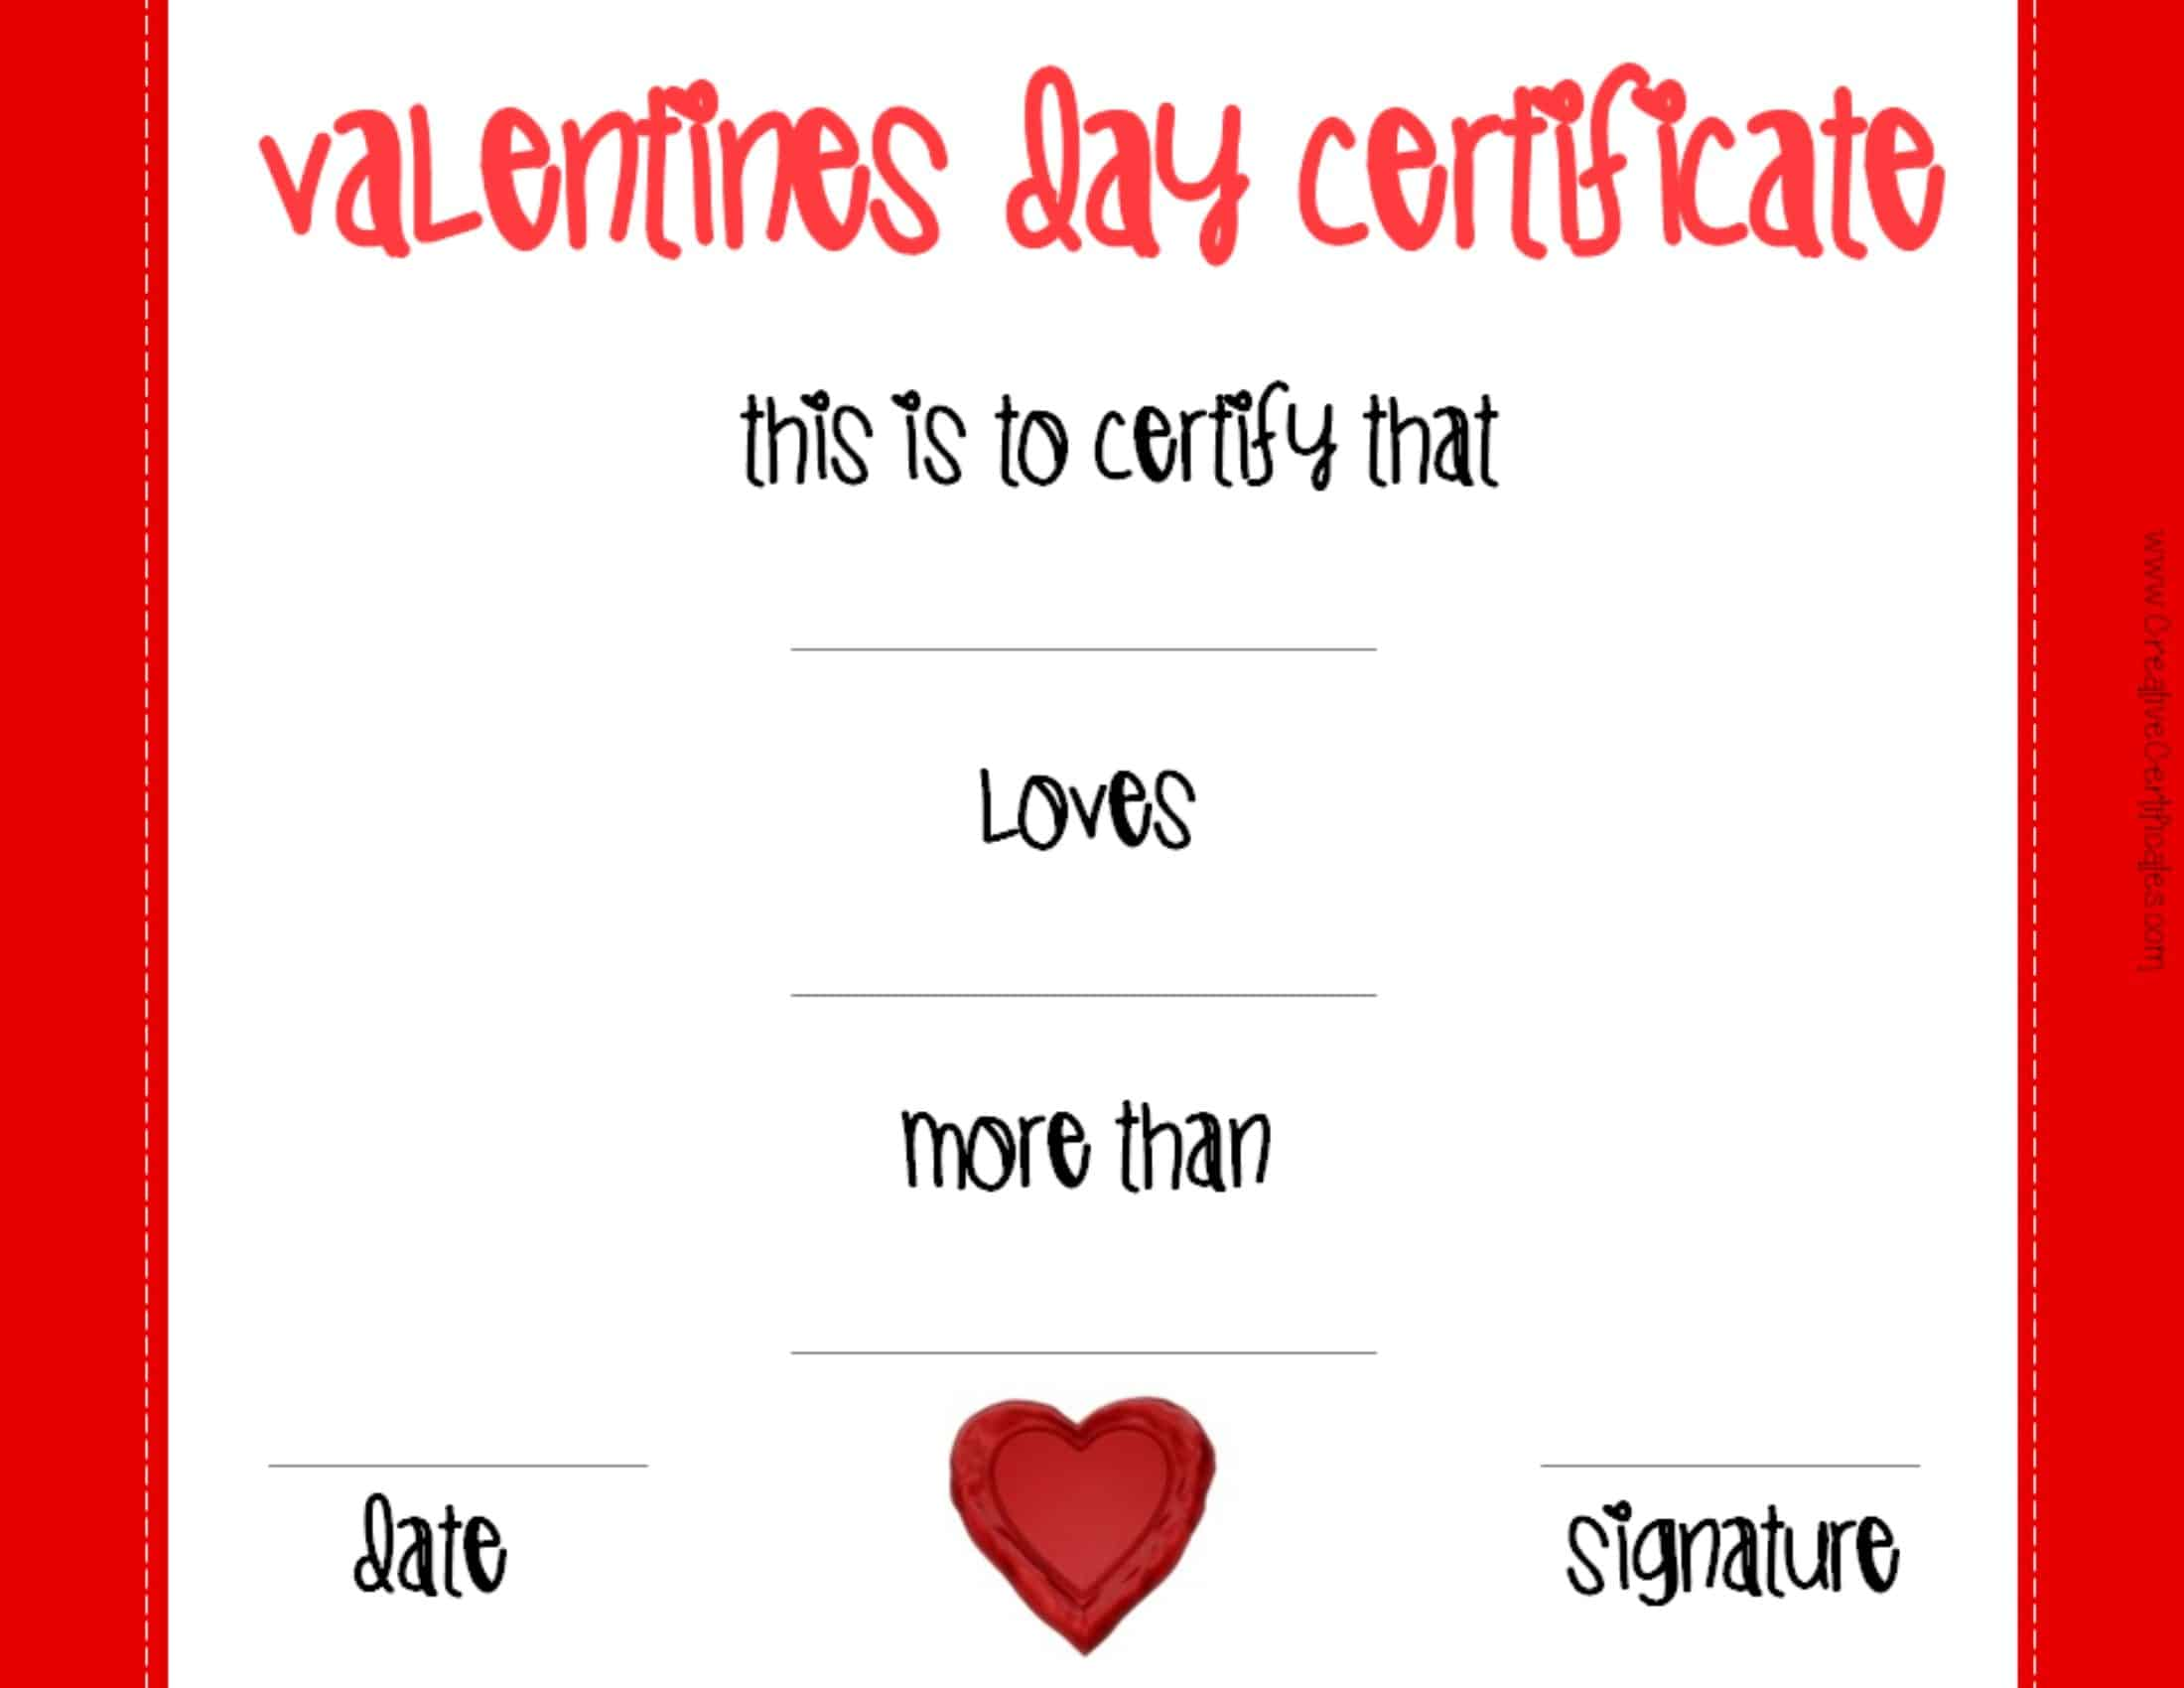 Valentines day certificates valentines day greeting card alramifo Choice Image